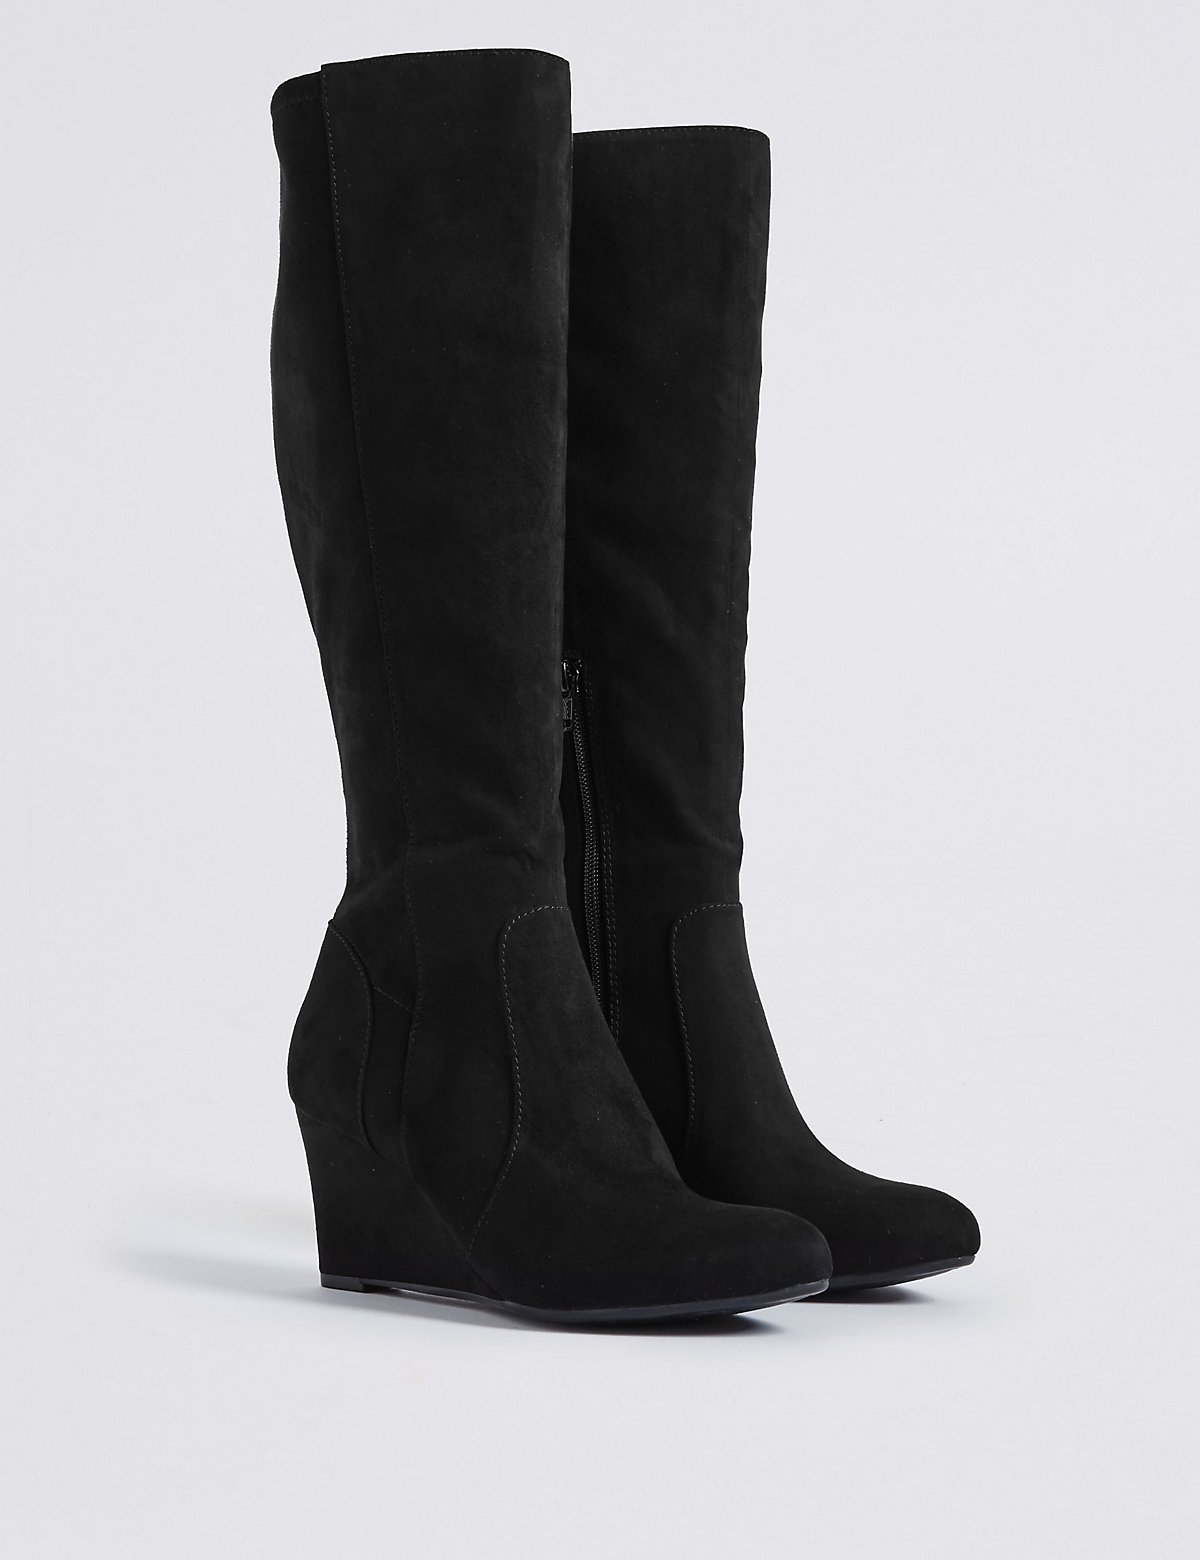 Image of M&S Collection Wedge Heel Side Zip Knee High Boots